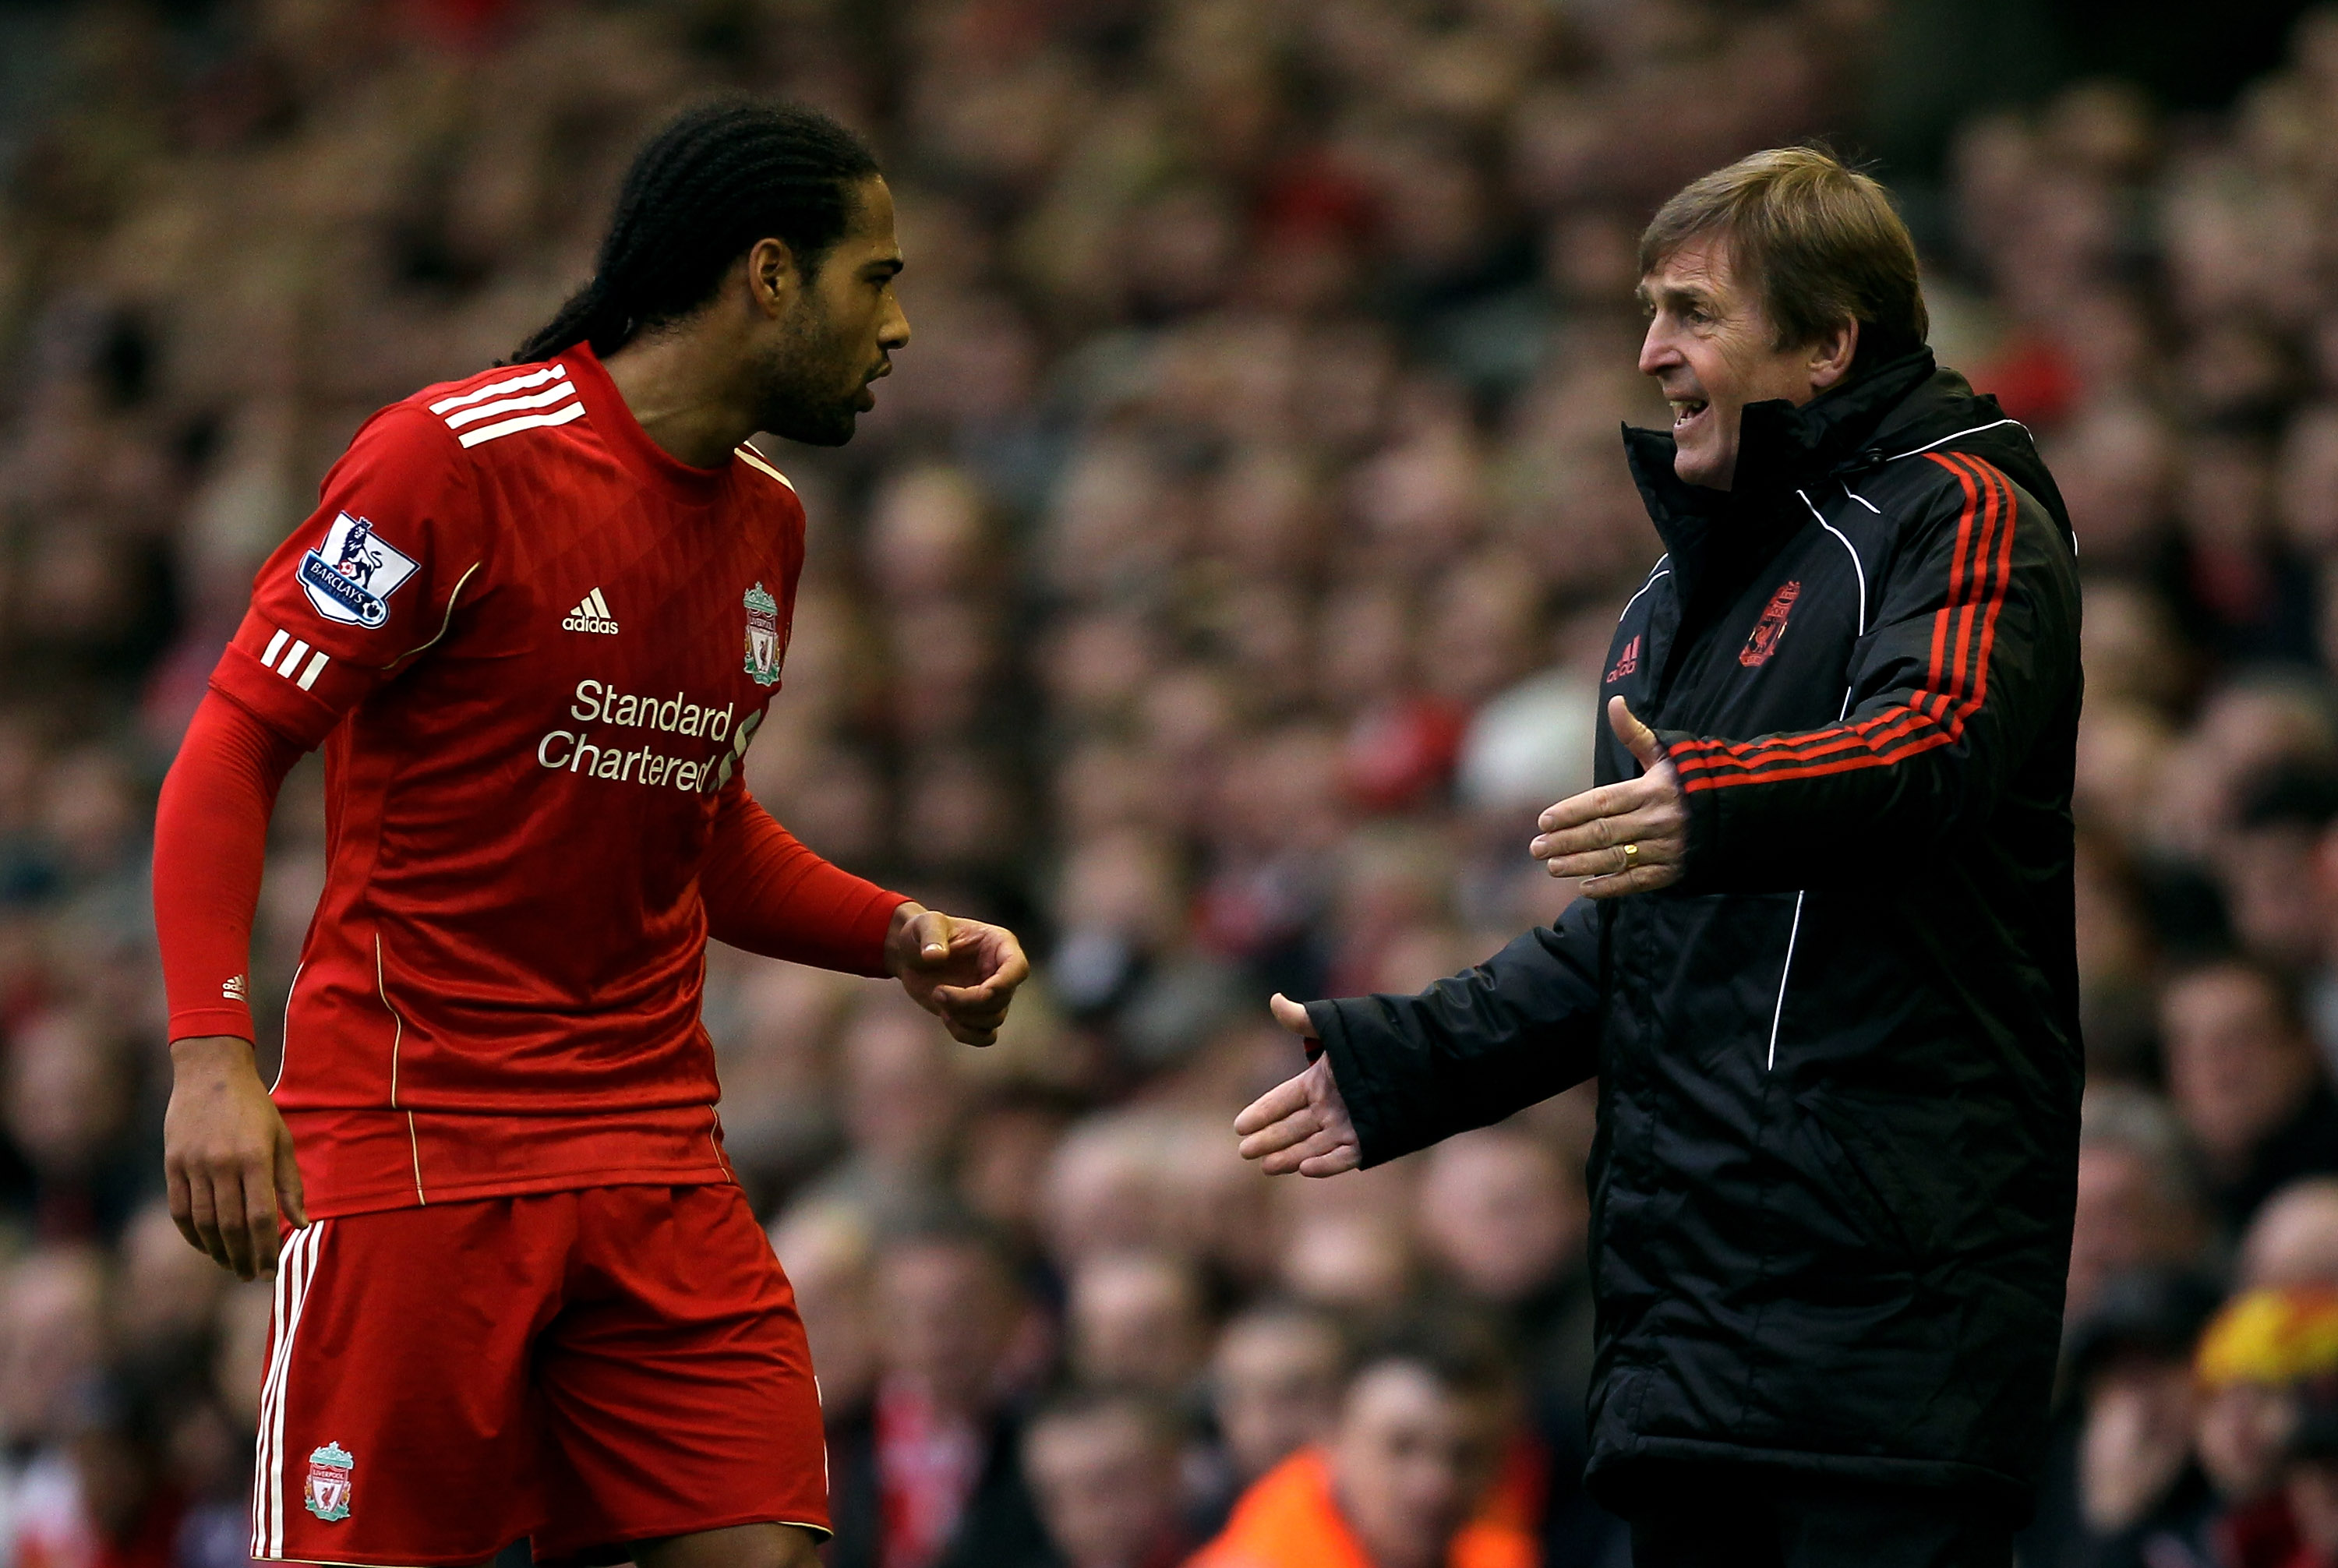 LIVERPOOL, ENGLAND - JANUARY 16:  Liverpool Manager Kenny Dalglish issues instructions to Glen Johnson during the Barclays Premier League match between Liverpool and Everton at Anfield on January 16, 2011 in Liverpool, England.  (Photo by Alex Livesey/Get